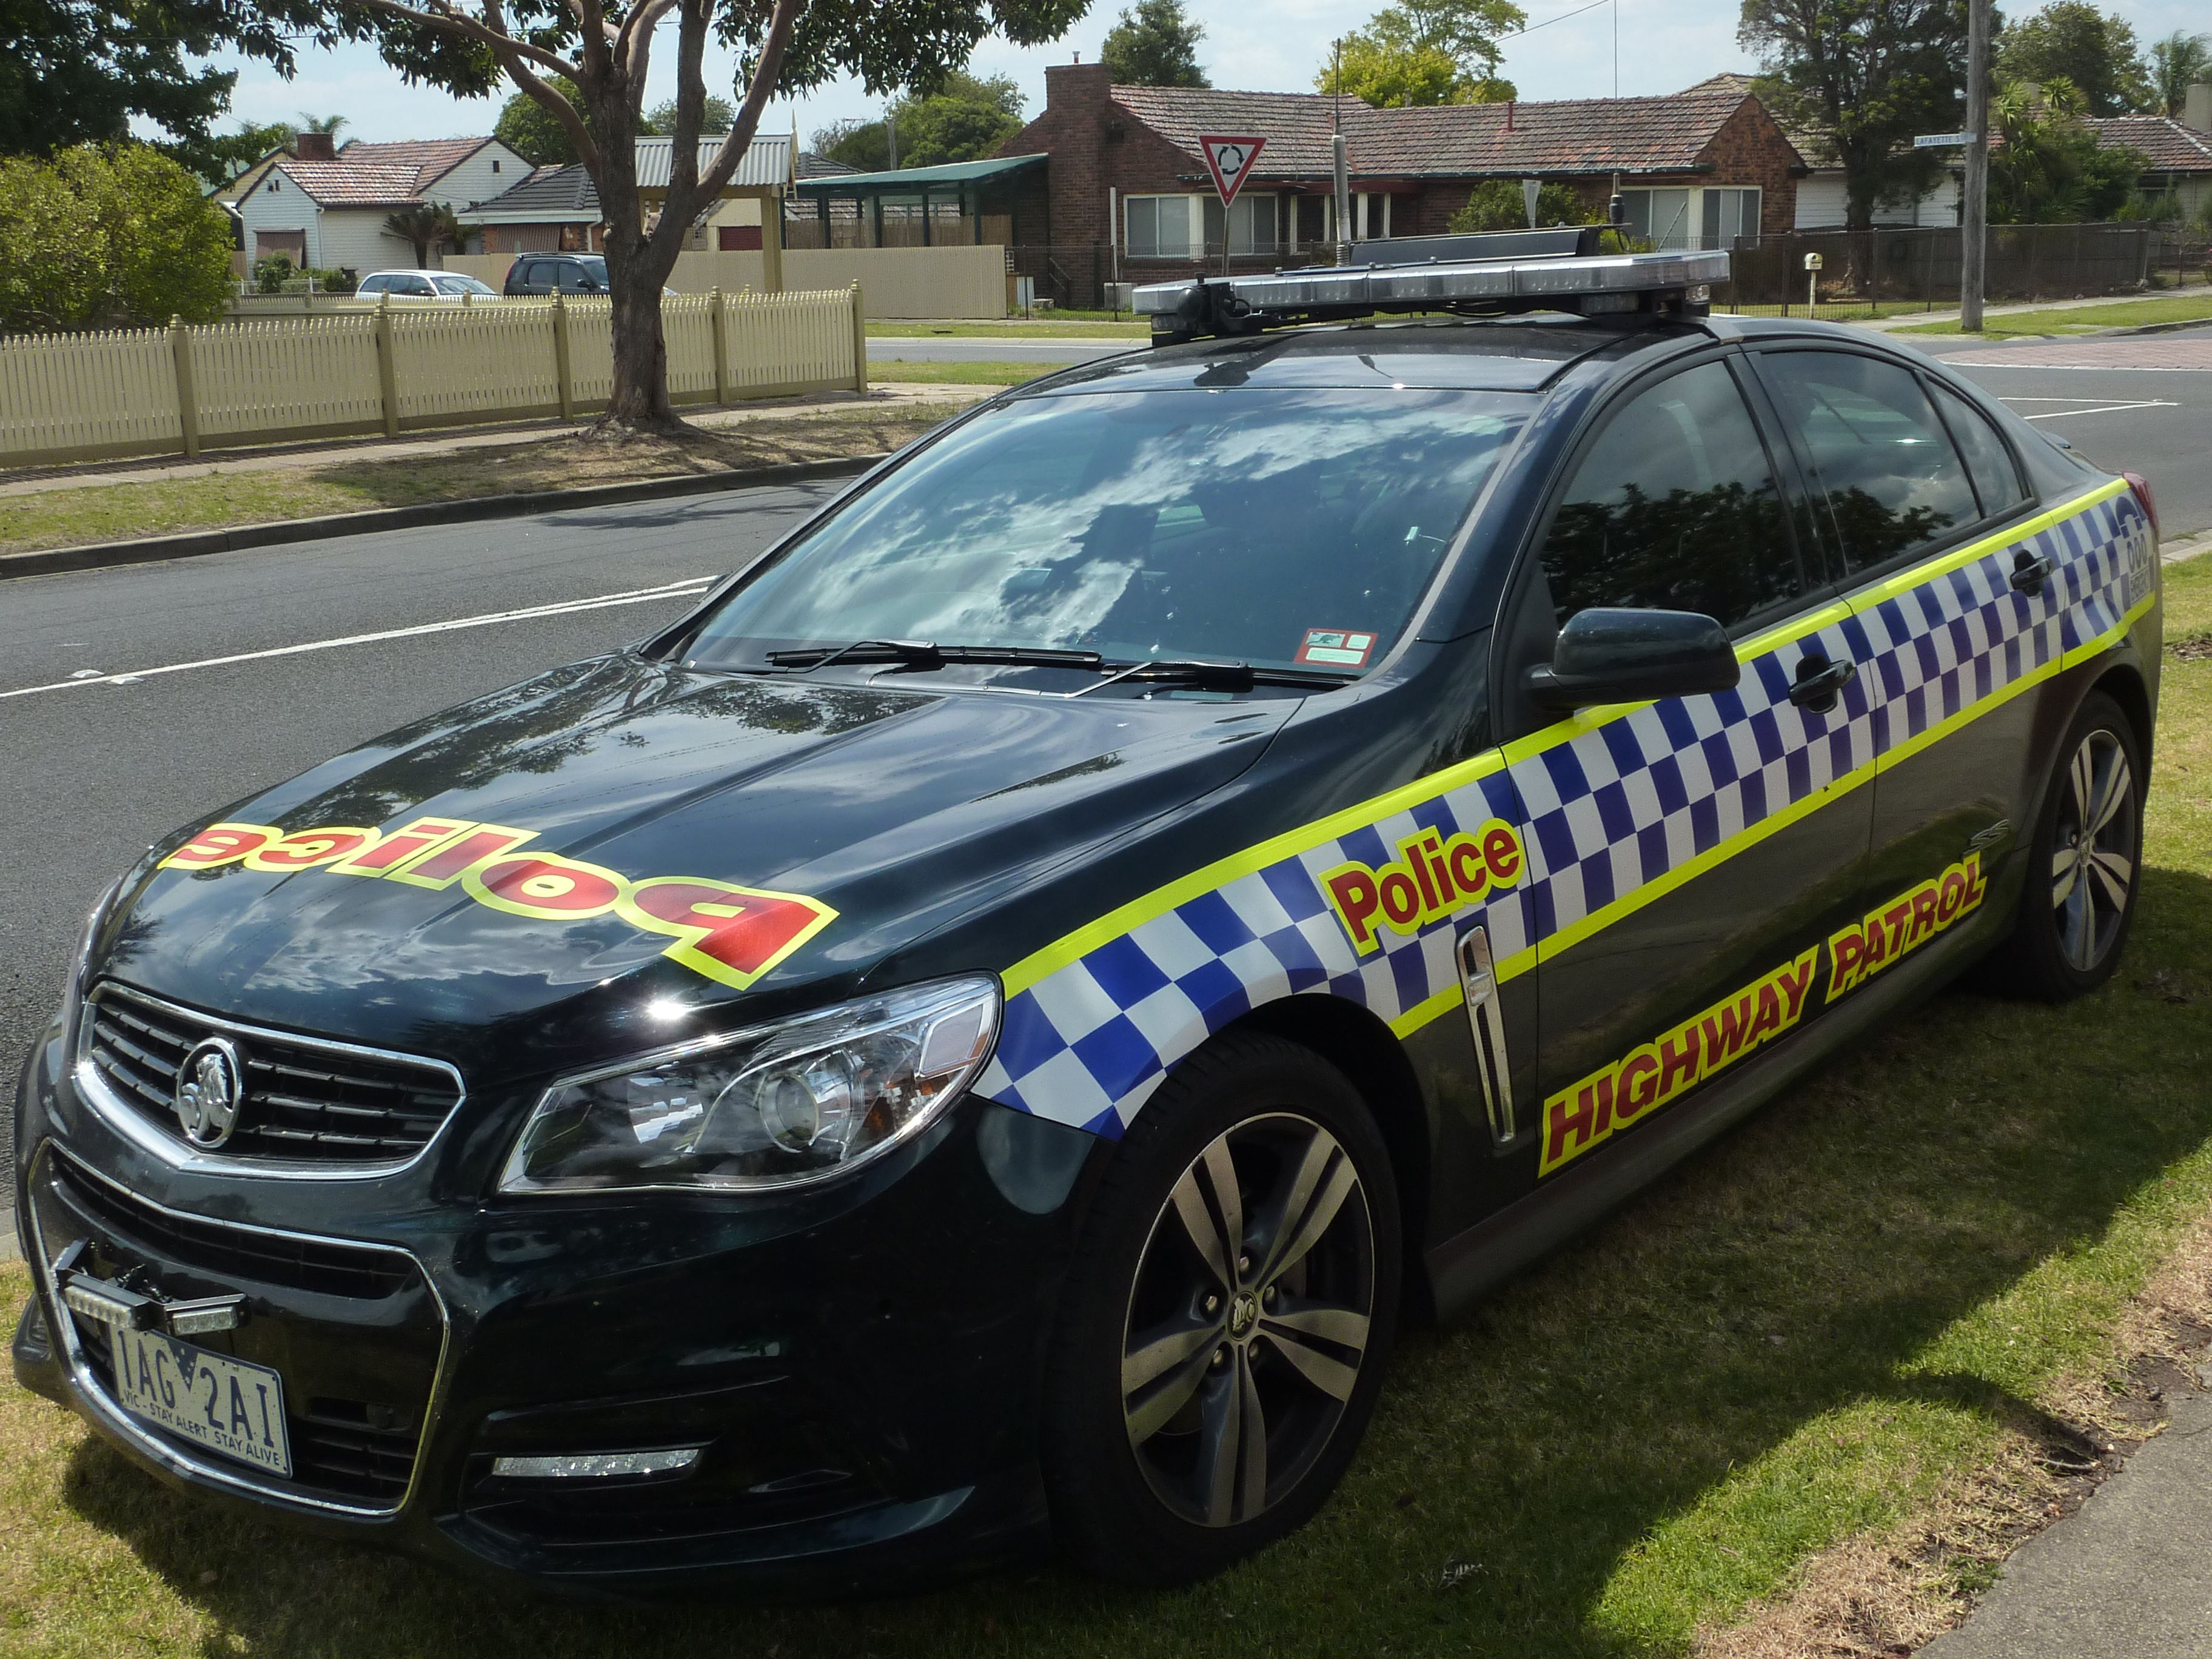 Victoria Highway Patrol | Police Vehicles of The World